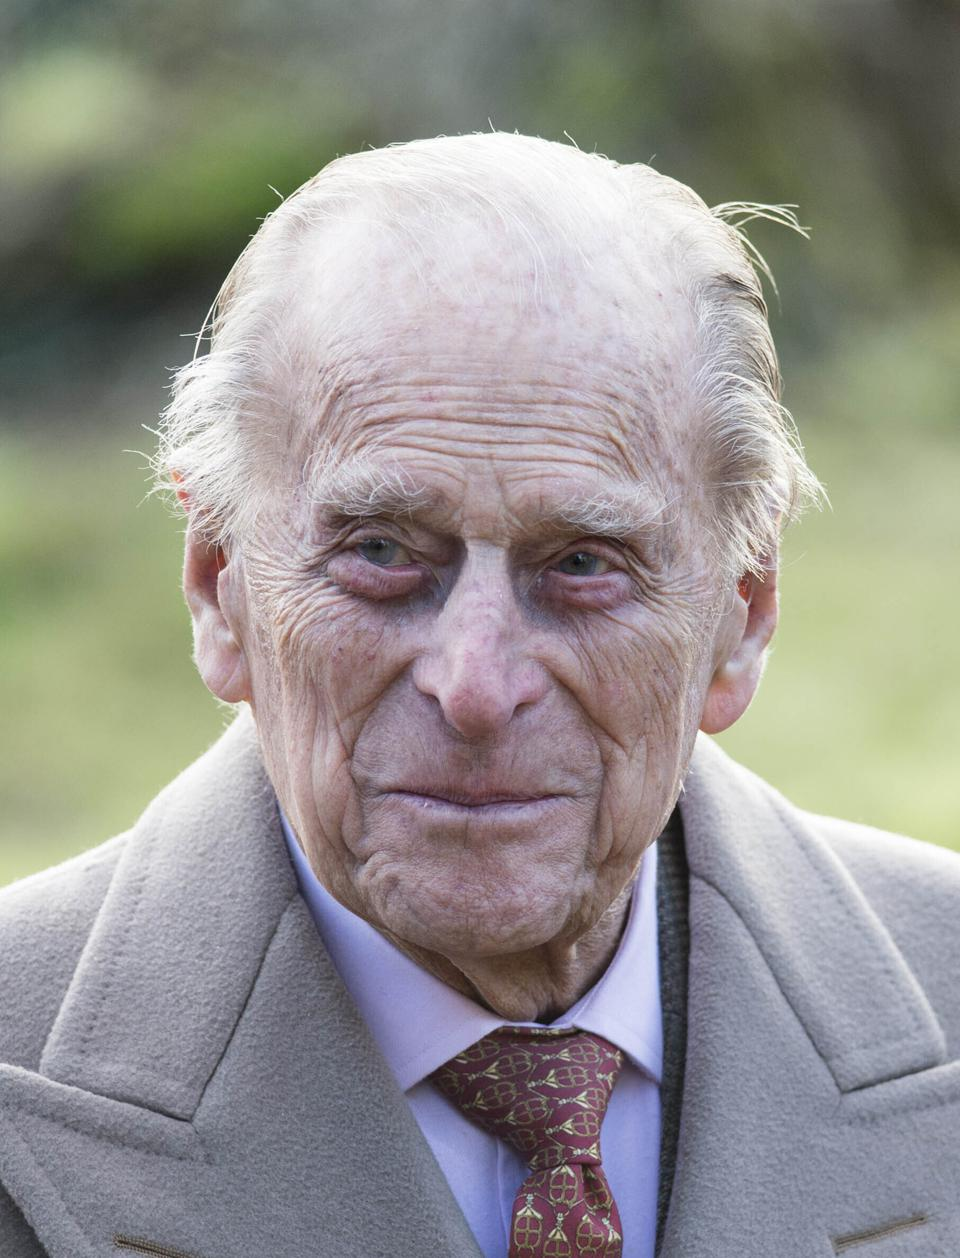 The Duke of Edinburgh, Prince Philip, has passed away at age 99